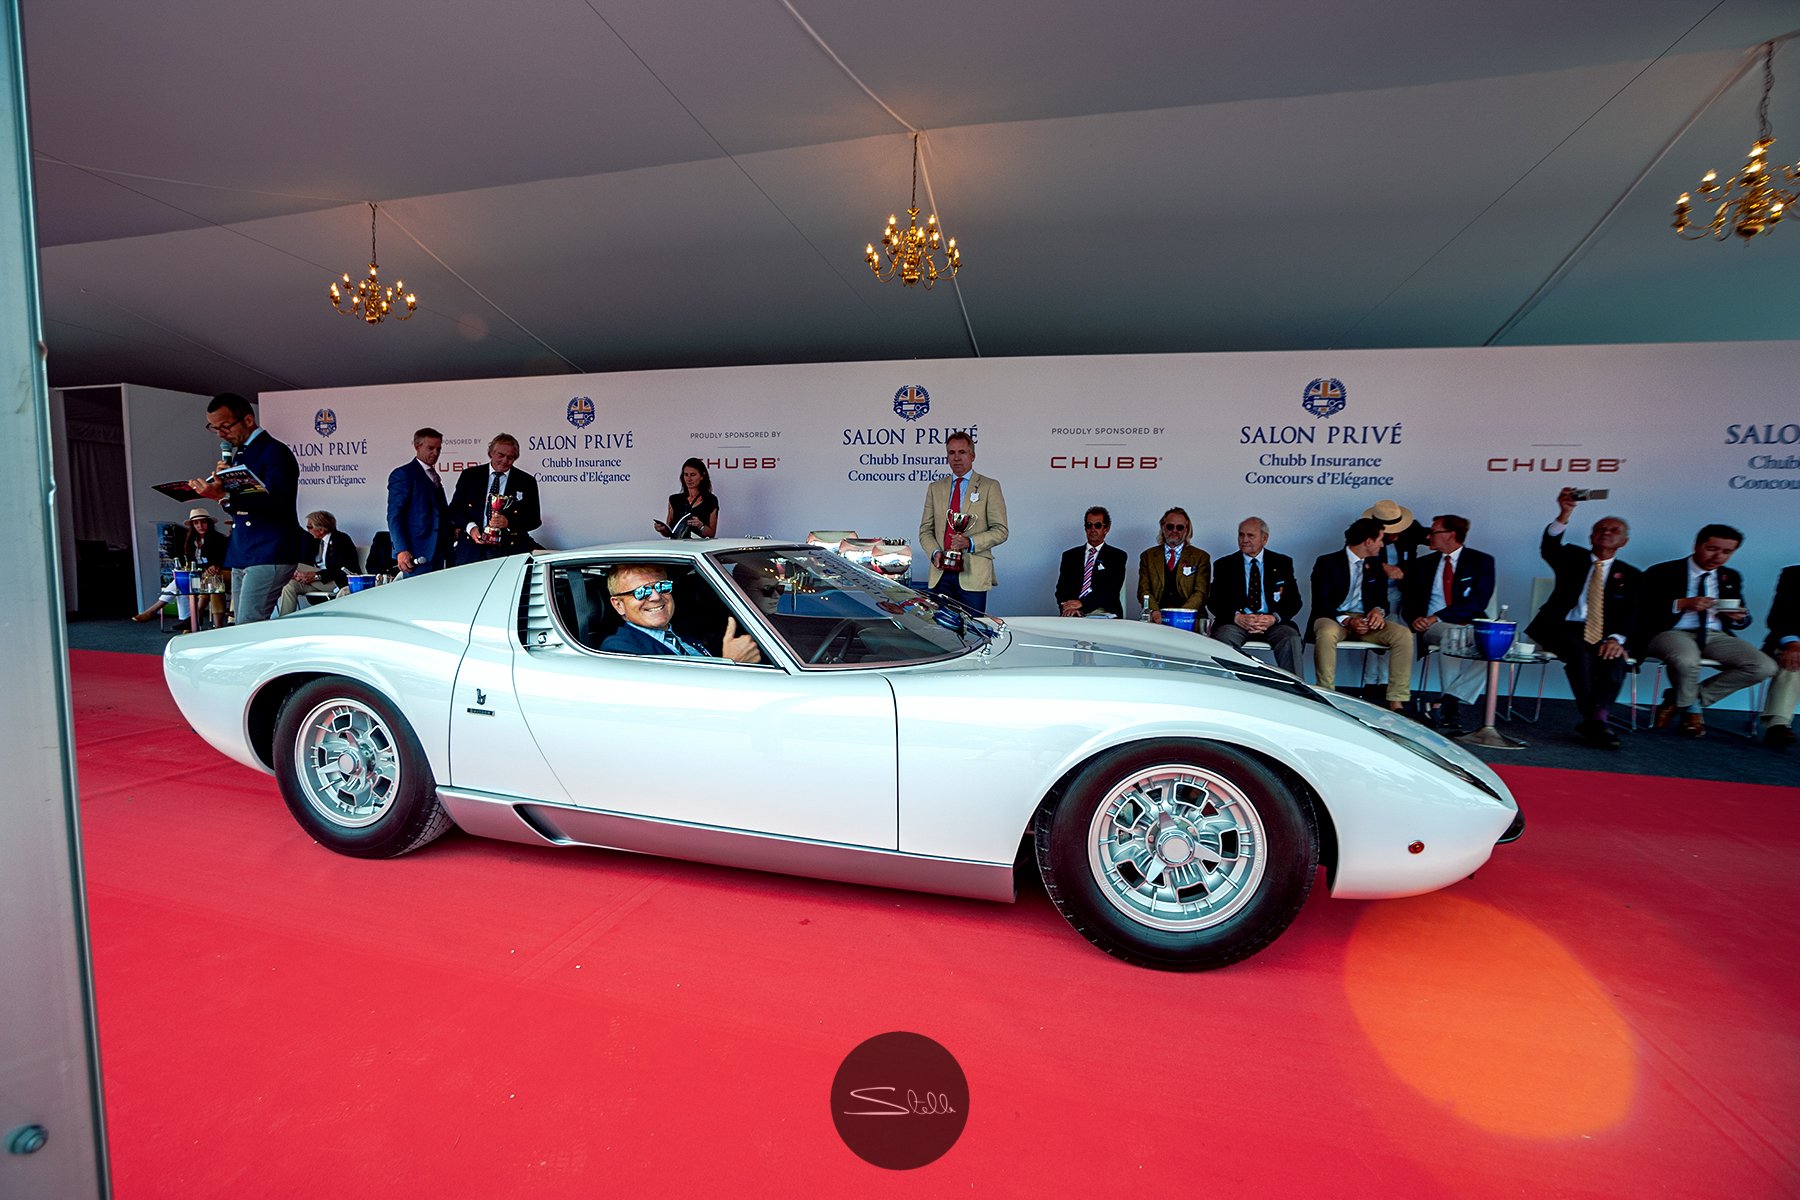 Stella Scordellis Salon Prive 2018 74 Watermarked.jpg